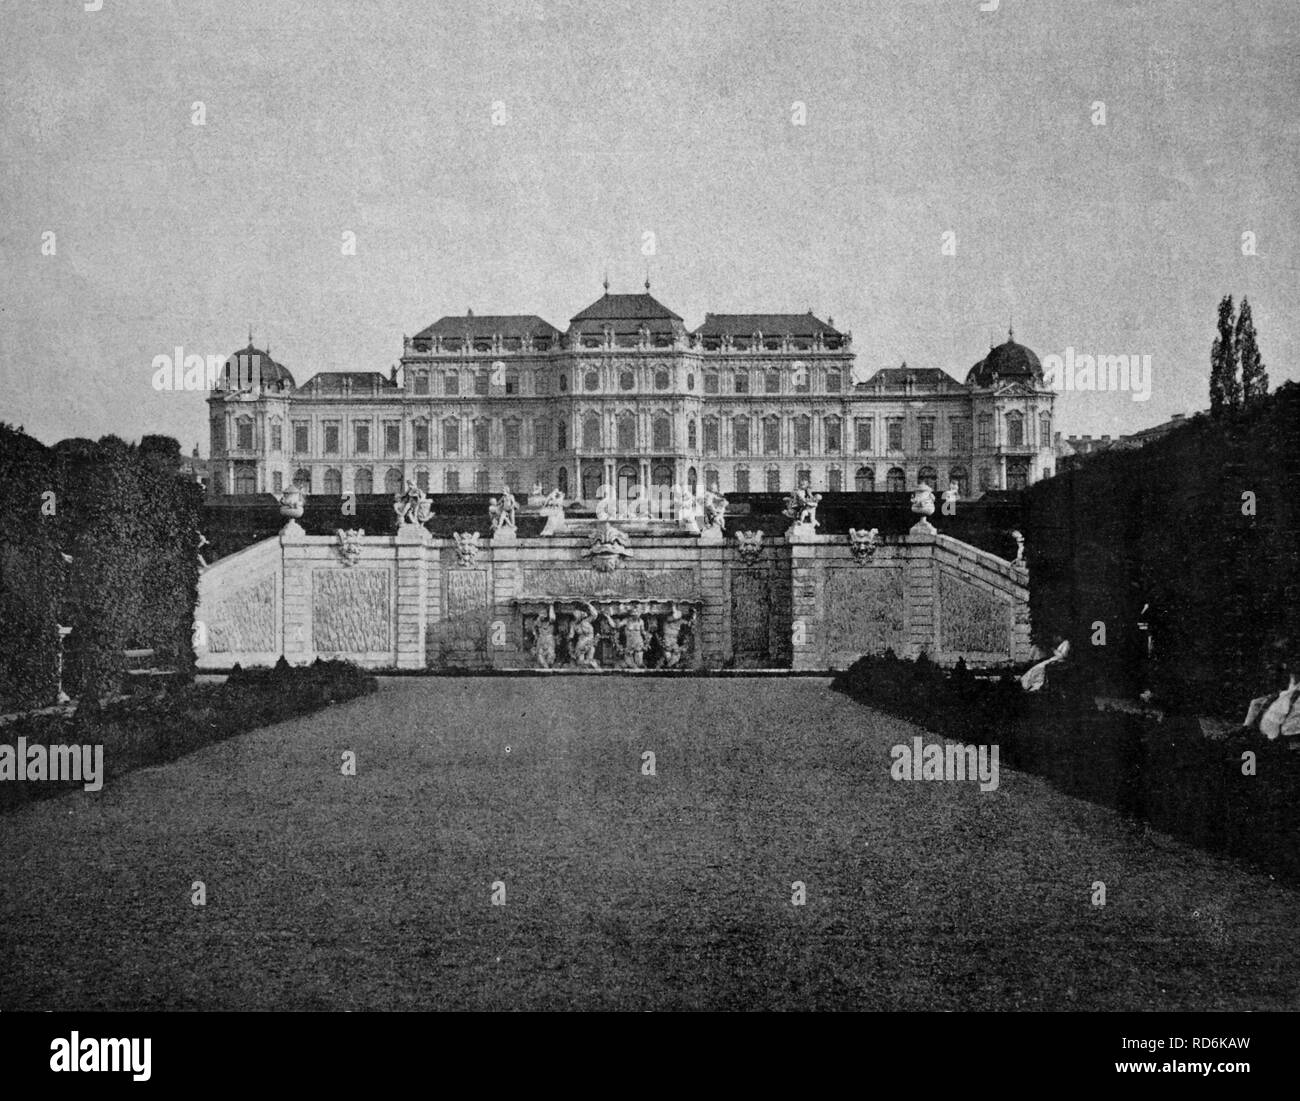 One of the first autotypes of the Belvedere Palace in Vienna, historical photograph, 1884 Stock Photo